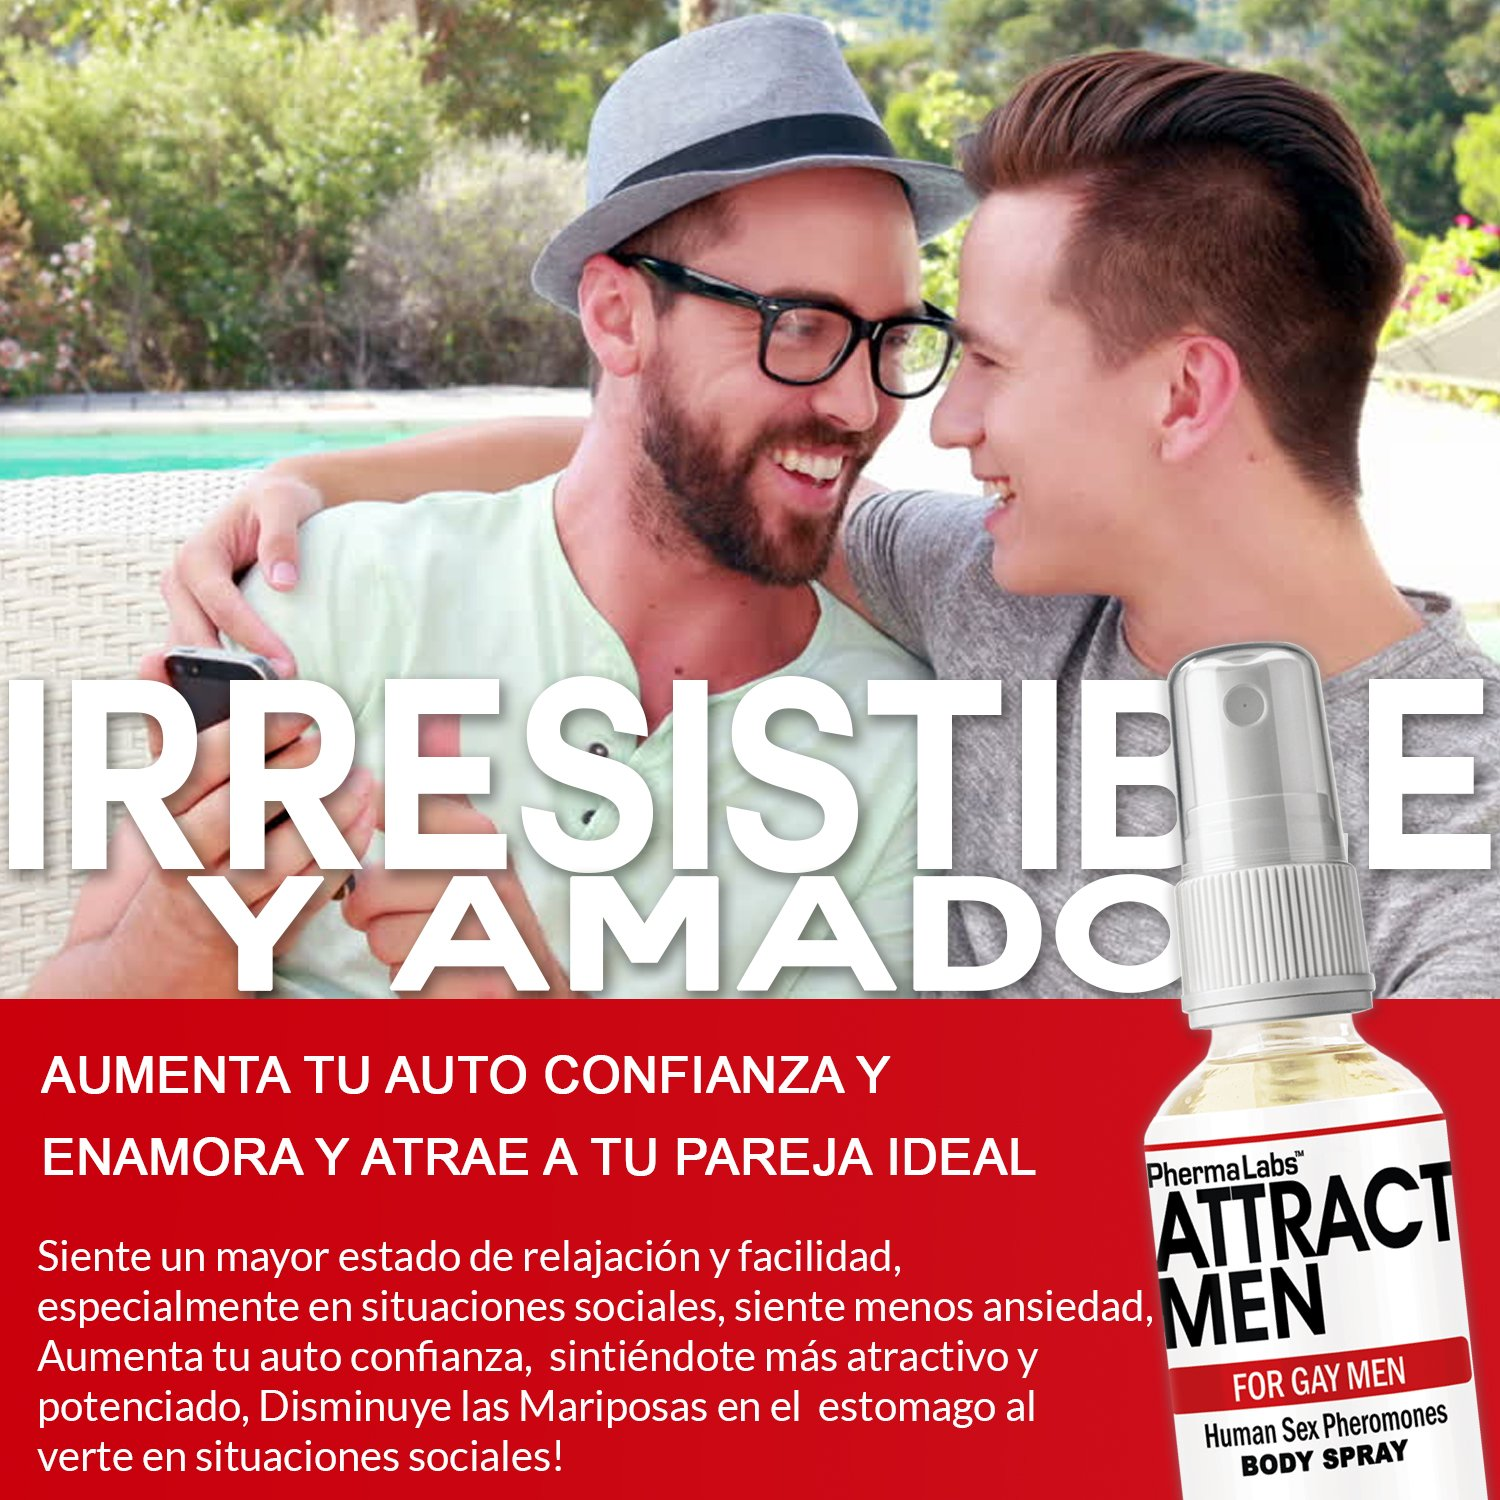 Amazon.com : Gay Feromonas Body Spray para Hombres- 1 oz - Atraer Hombres instantáneamente- Mayor Concentración De Feromonas Posible- Aumenta El libido- y ...